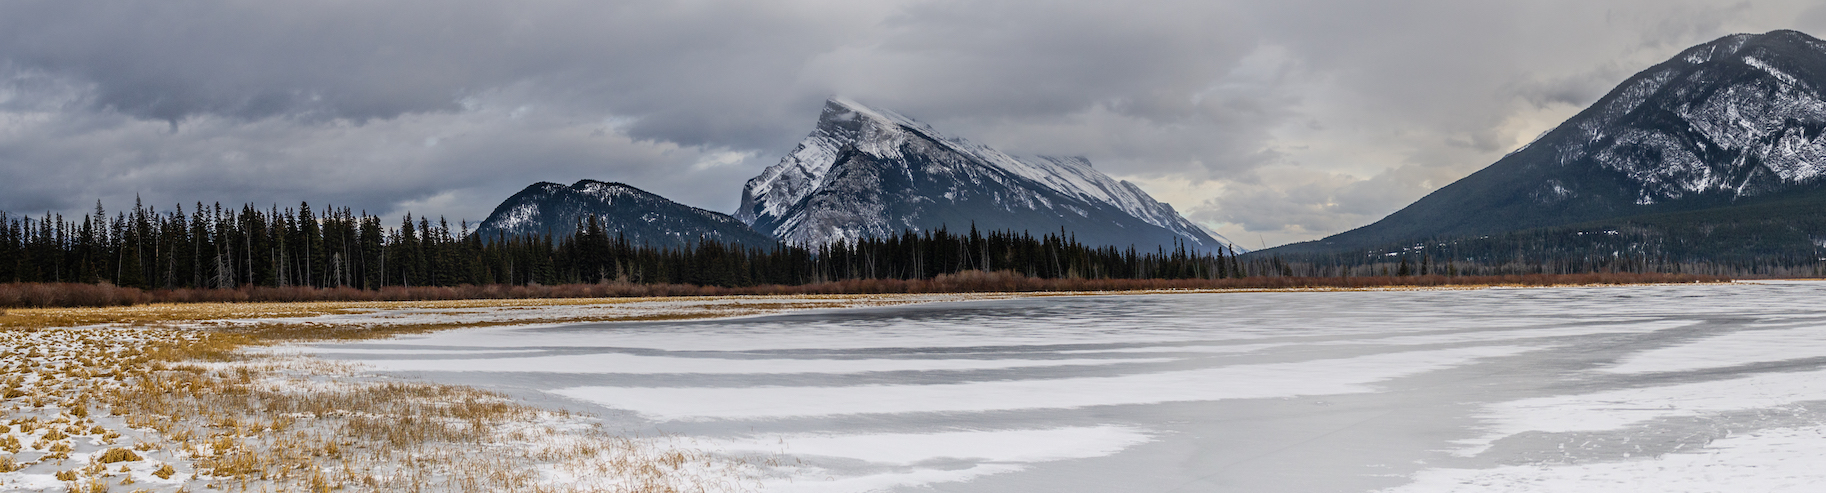 Image credit Dr. Sarah Hewitt; photo of Mount Rundle near Banff, Alberta